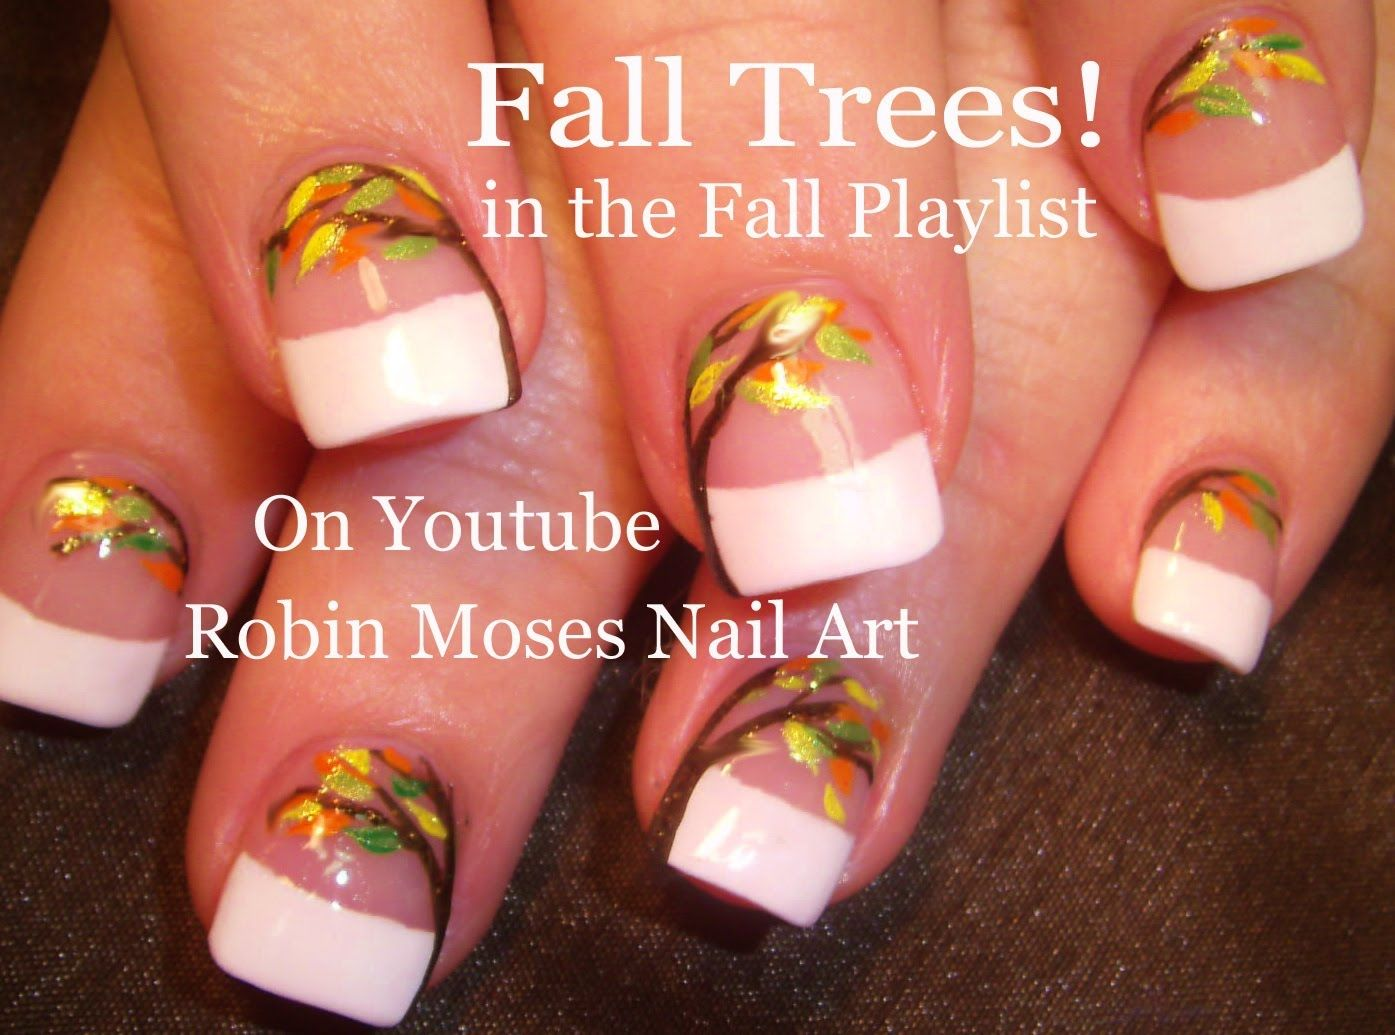 Nail art tutorial diy easy fall and thanksgiving nail design nail art tutorial diy easy fall and thanksgiving nail design tutorial prinsesfo Image collections